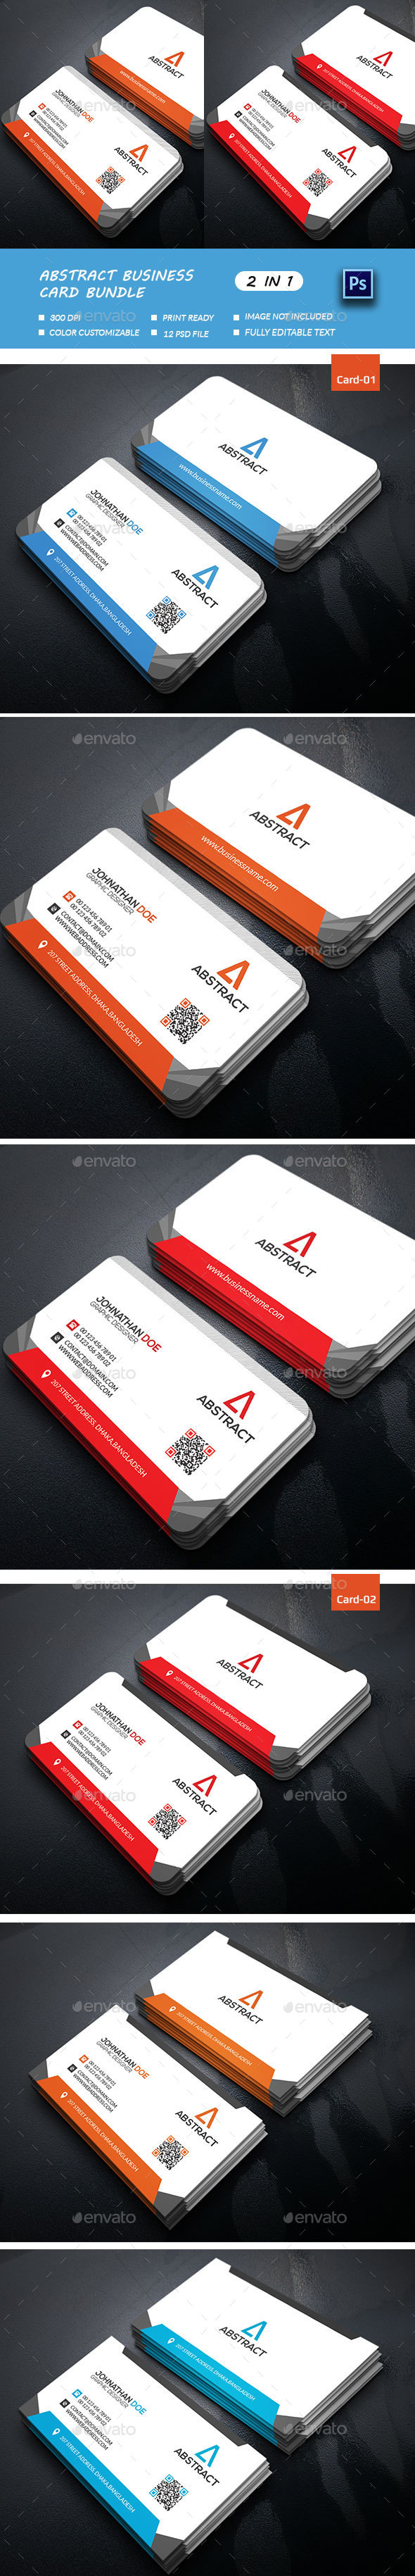 Abstract Business Card Bundle - Business Cards Print Templates